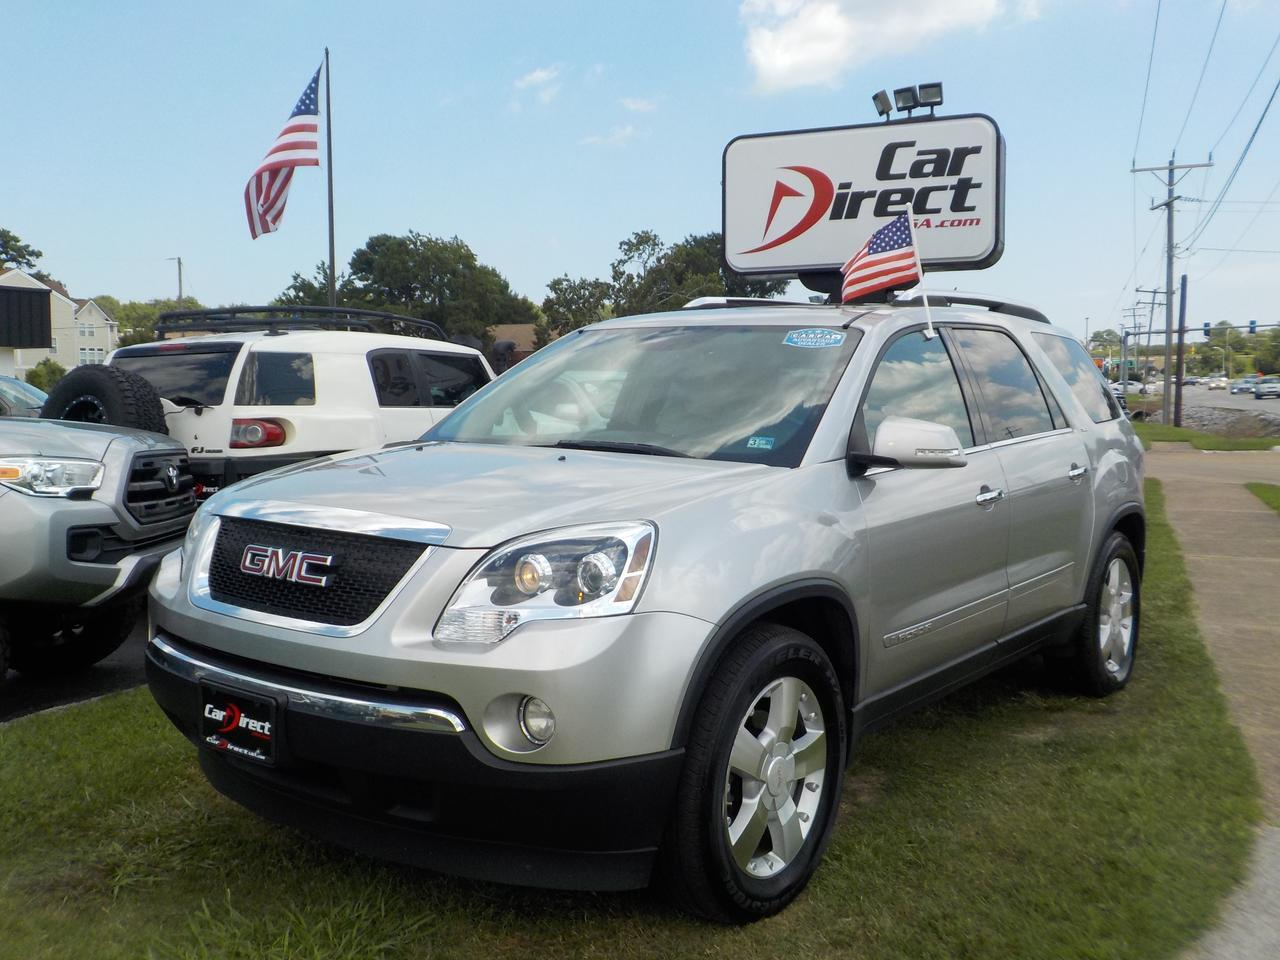 2008 GMC ACADIA SLT, AWD, HEAD UP DISPLAY, LEATHER SEATS, BOSE SOUND SYSTEM, CAPTAIN CHAIRS AND THIRD ROW!